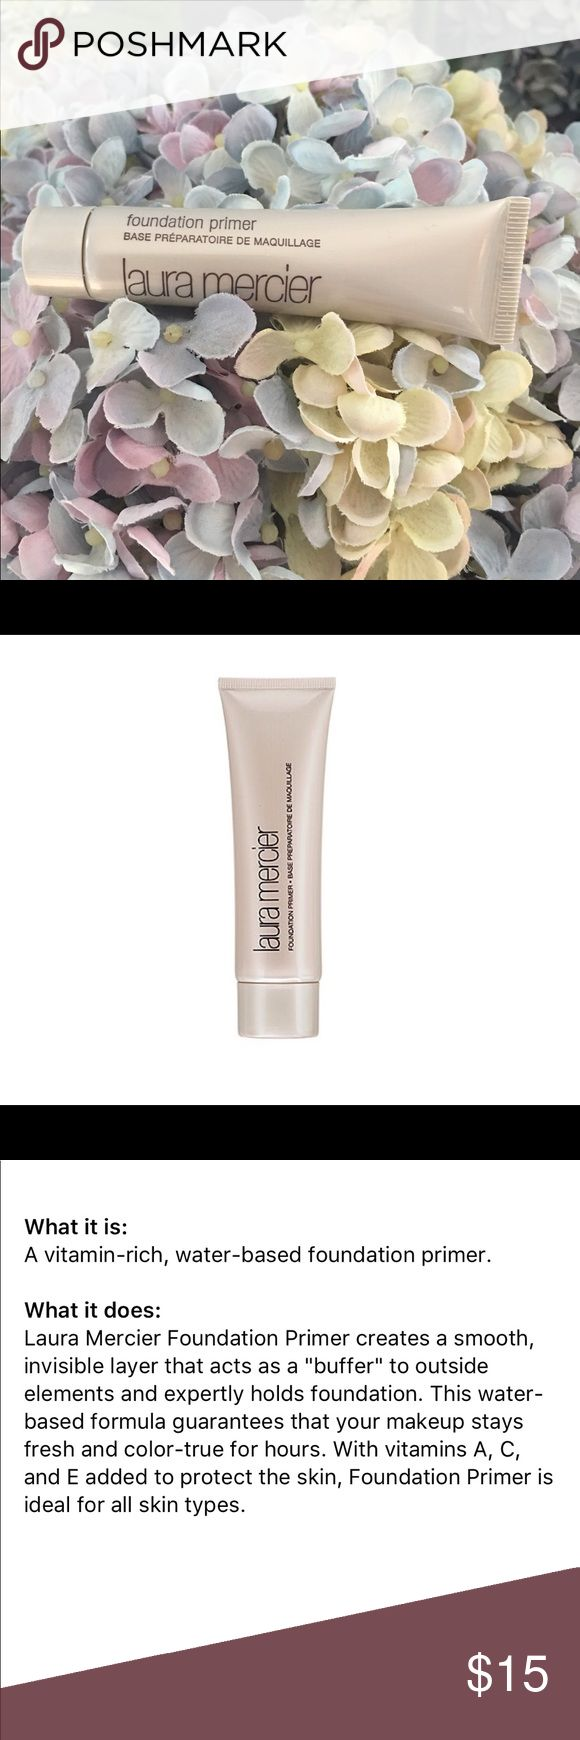 Laura Mercier Foundation Primer, Mini Laura Mercier was the first one to come out with a foundation primer. This is the original. It's a deluxe mini size. This will create a great canvas and extend the wear of your makeup. No trades. Bundle to save and Enjoy 😊 Sephora Makeup Face Primer